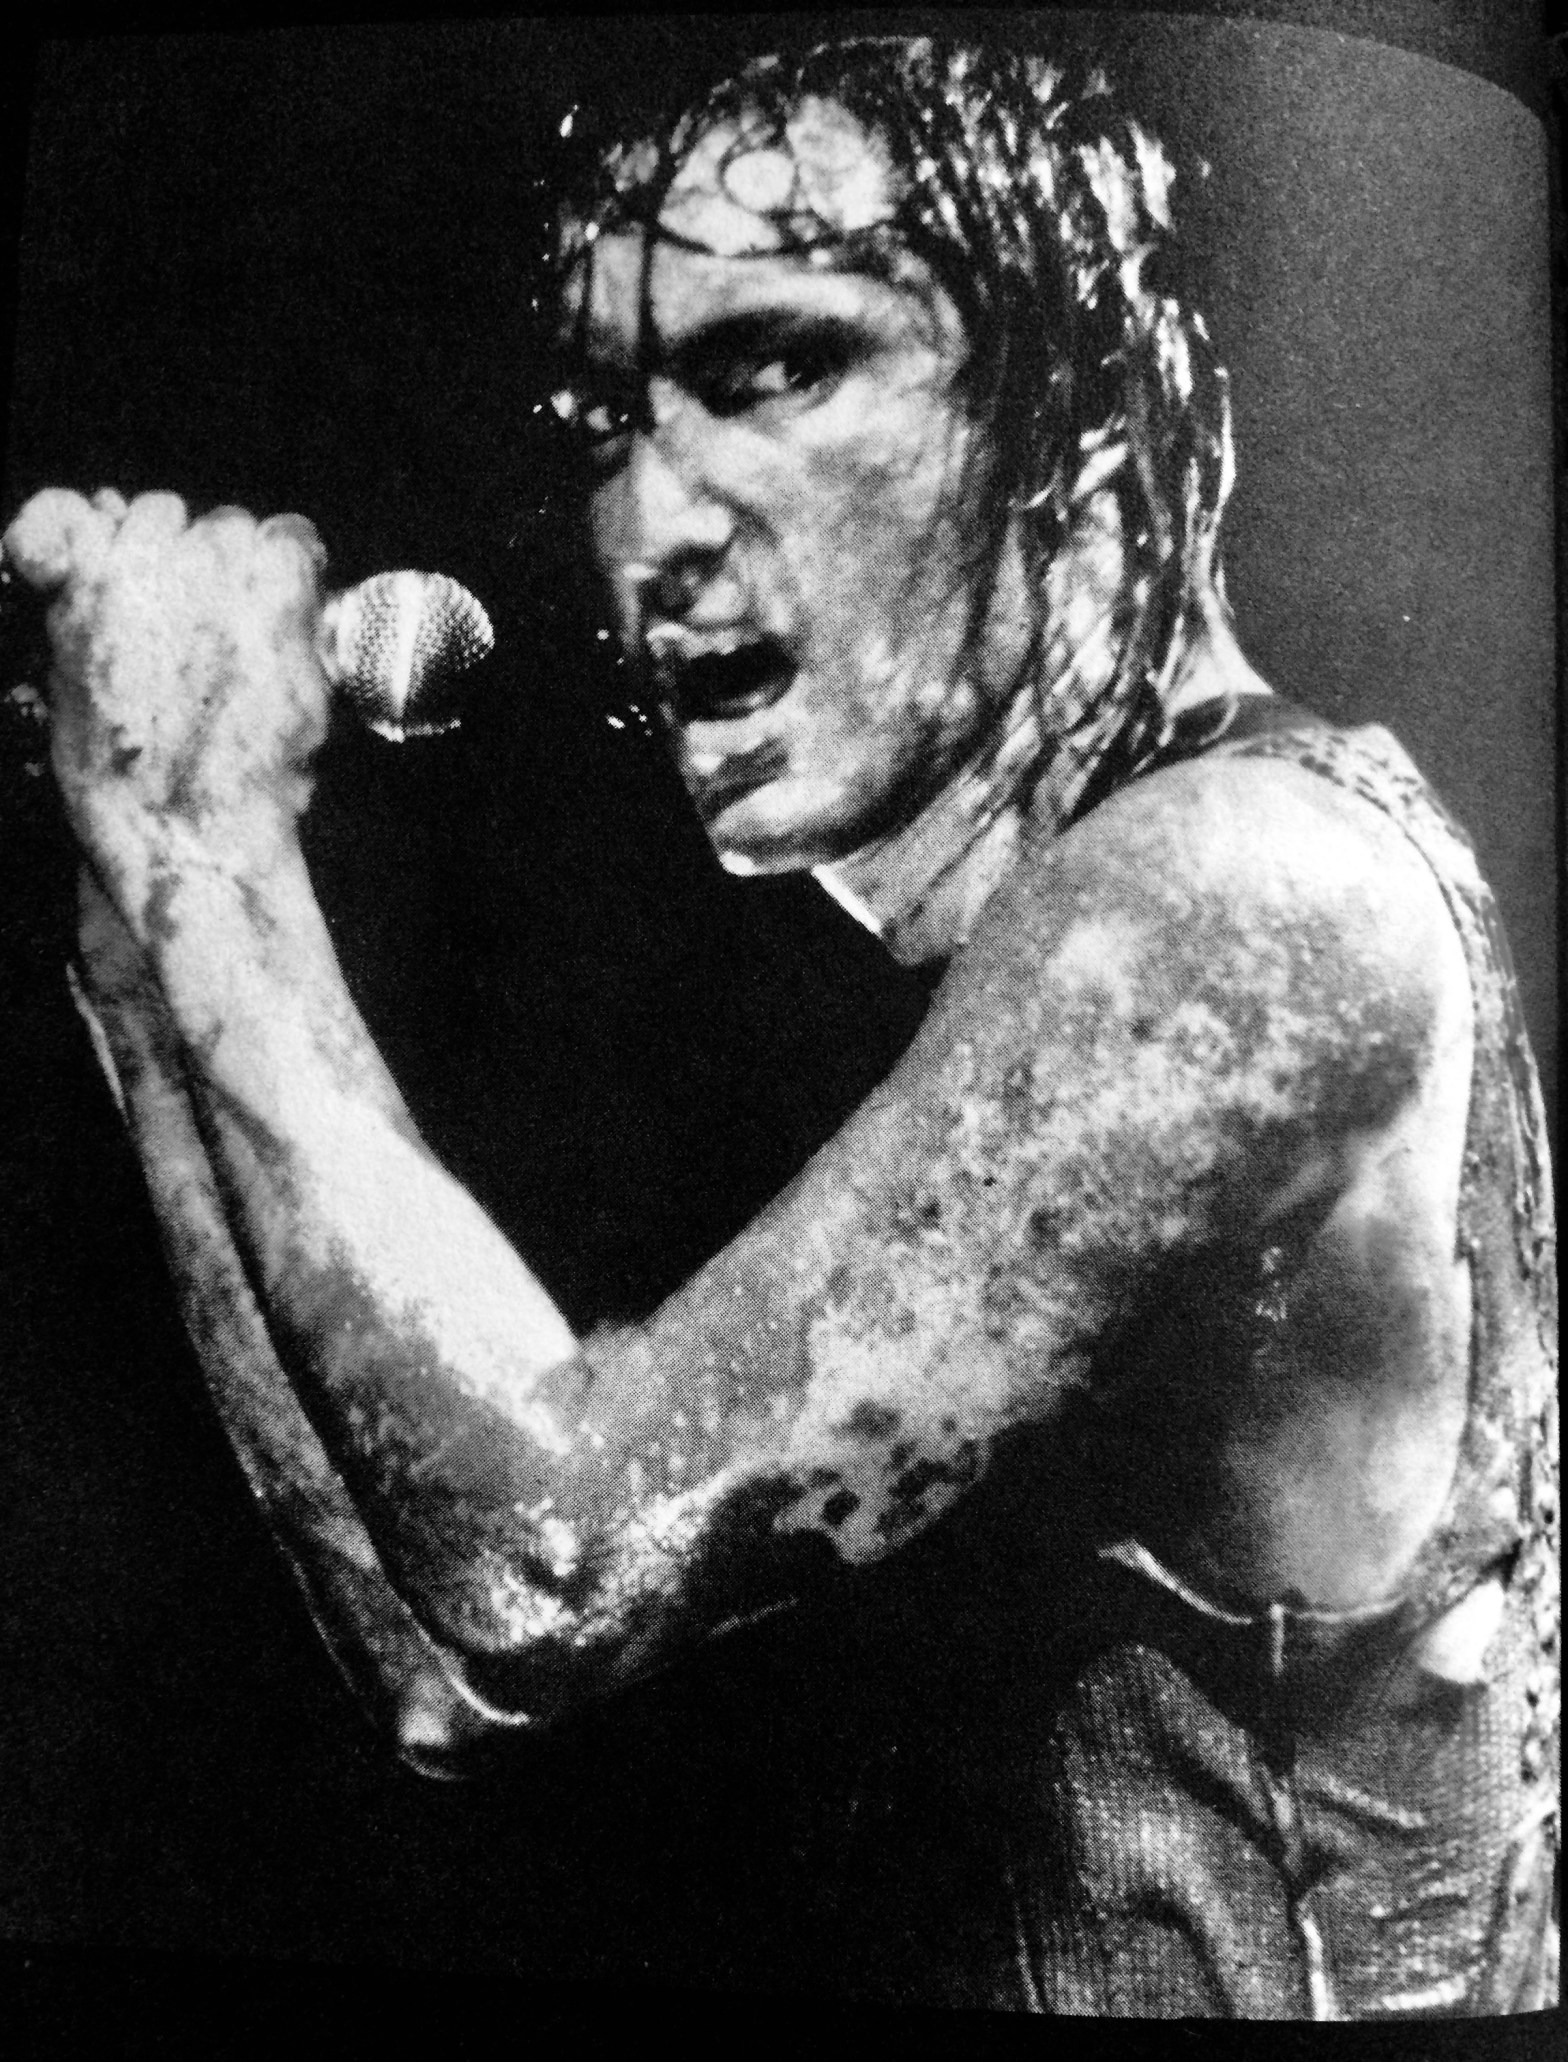 Play Nine Inch Nails : nails, PIGS., Woodstock, Nails, Overground, Steiner